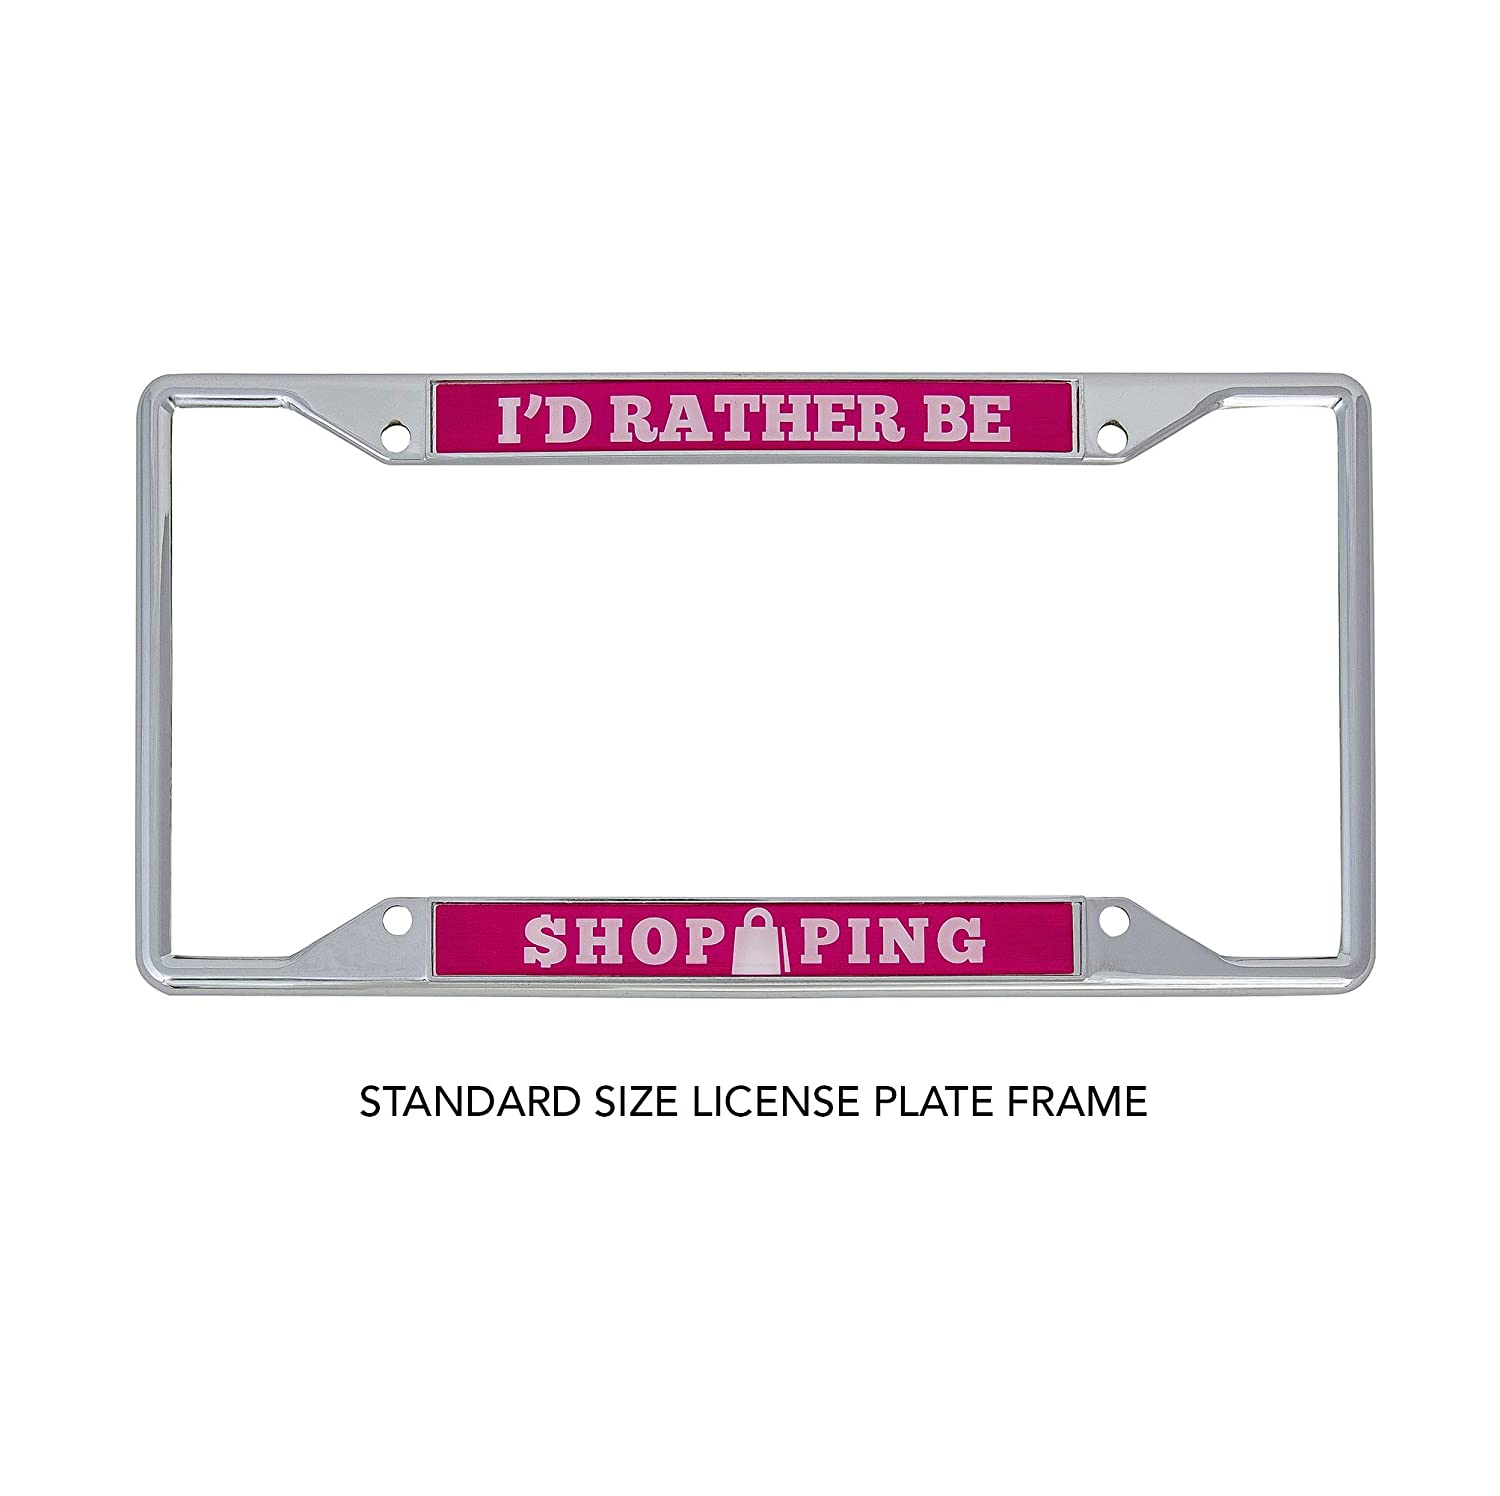 Desert Cactus Id Rather Be Shopping Metal Auto License Plate Frame Car Tag Holder